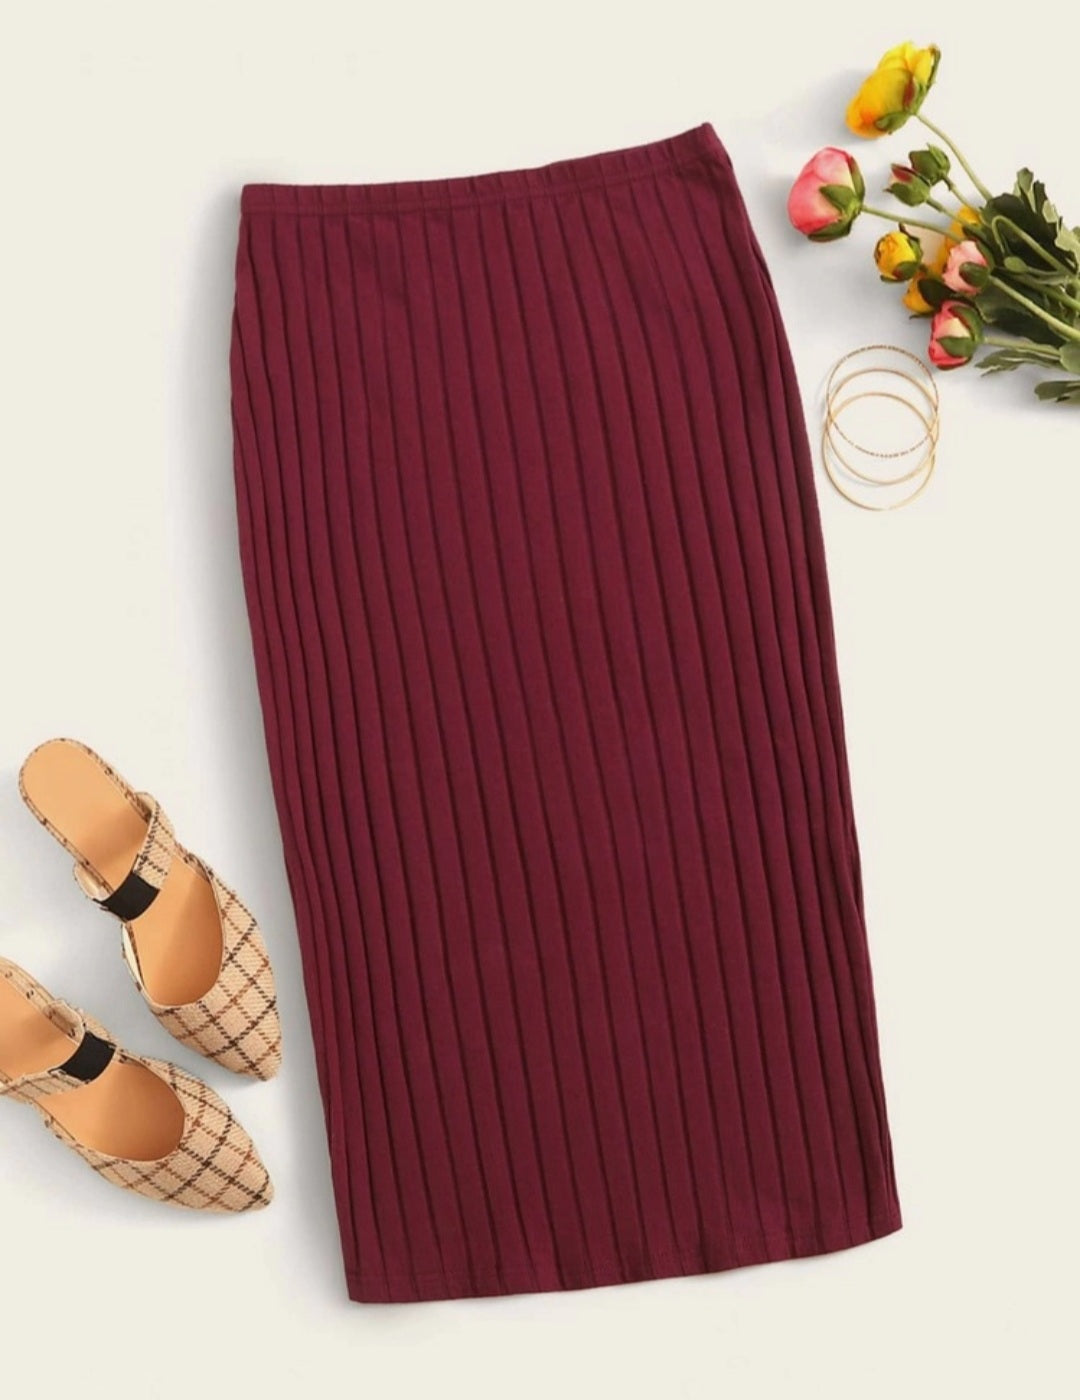 Elastic Waist Rib-knit Pencil Skirt| Pencil Skirt| Cotton| Midi Skirt| Elegant Skirt| High Waist Skirt